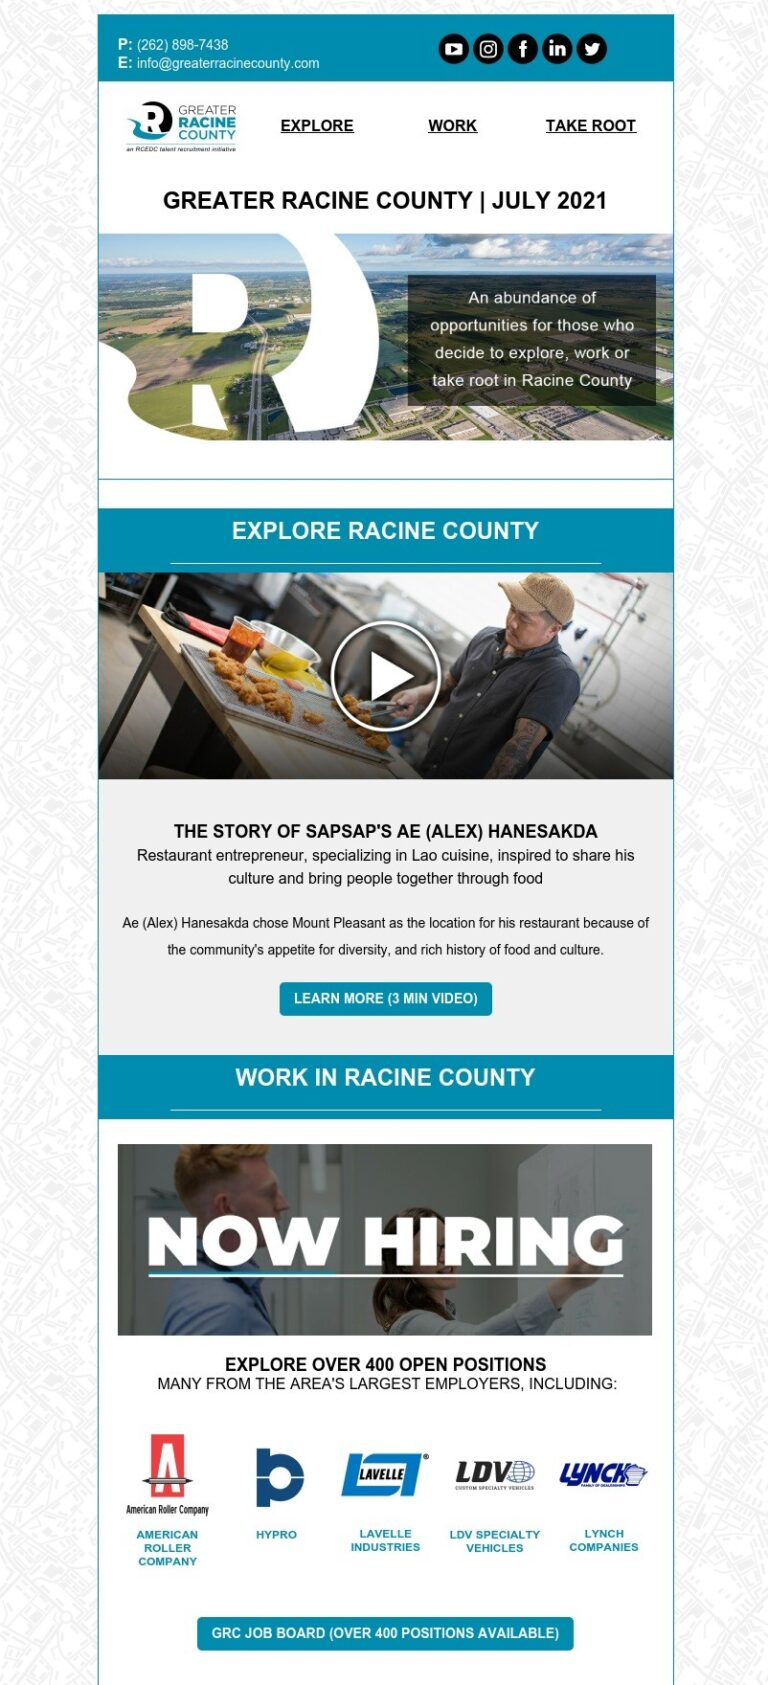 Greater Racine county newsletter featuring SapSap a lao-inspired restaurant and new jobs